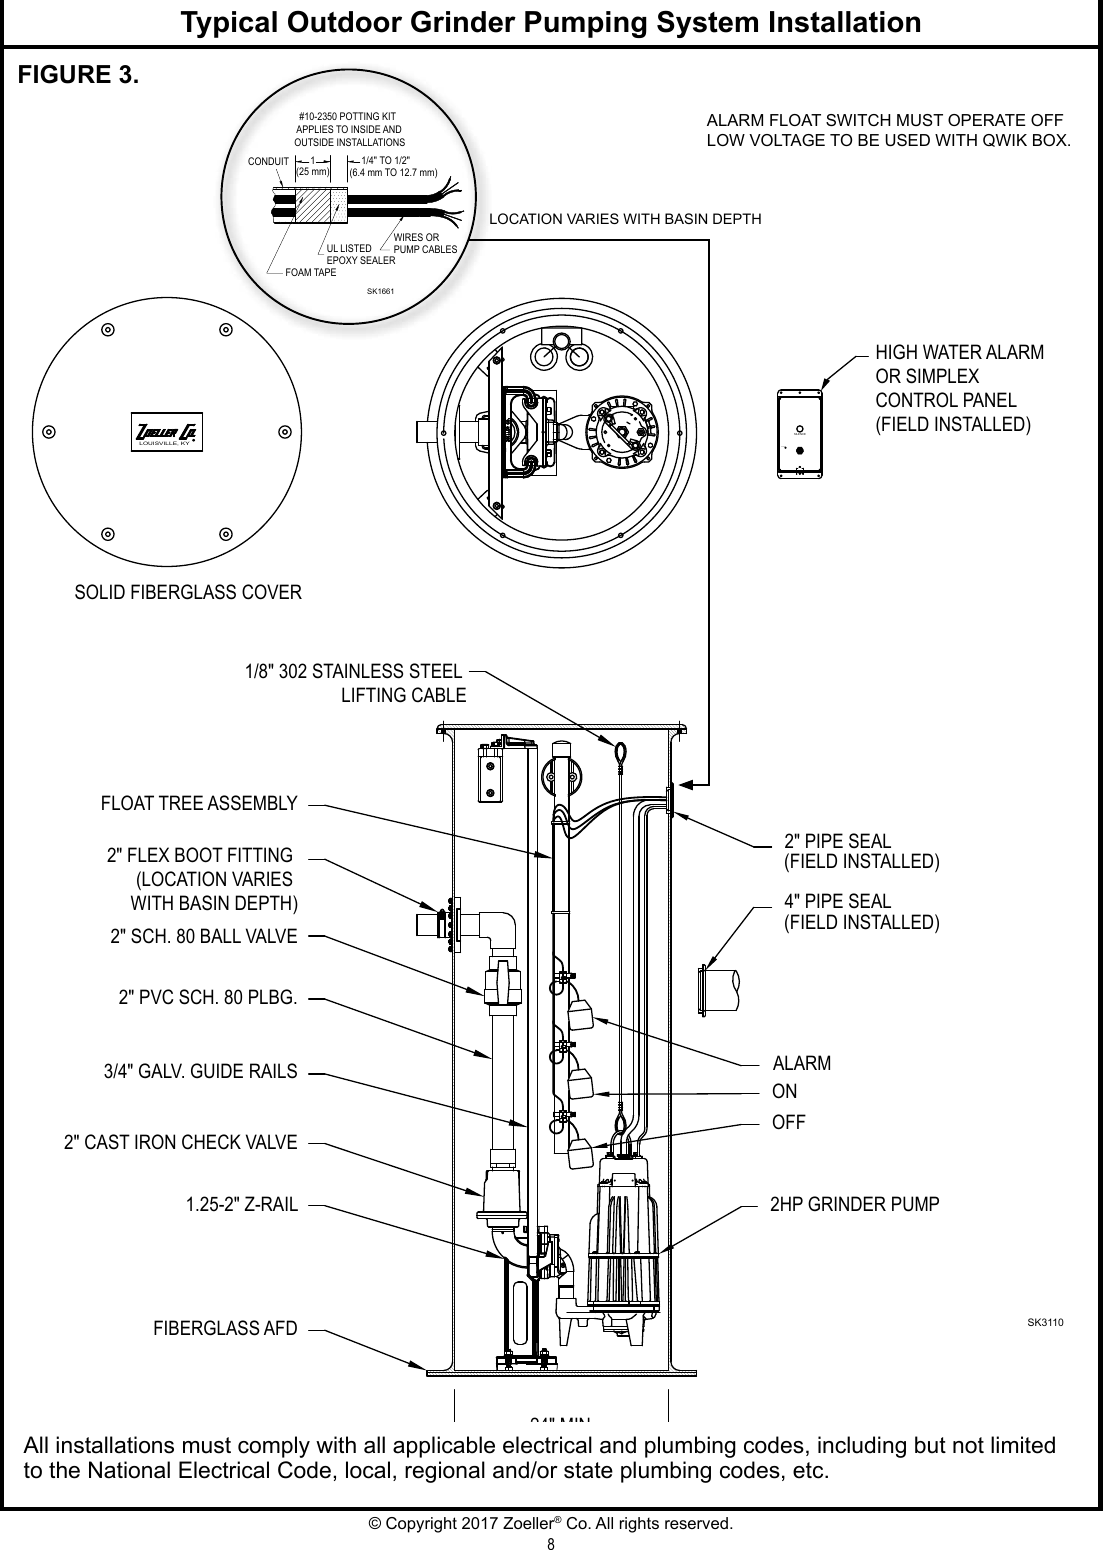 Sump Pump Wiring Diagram from usermanual.wiki